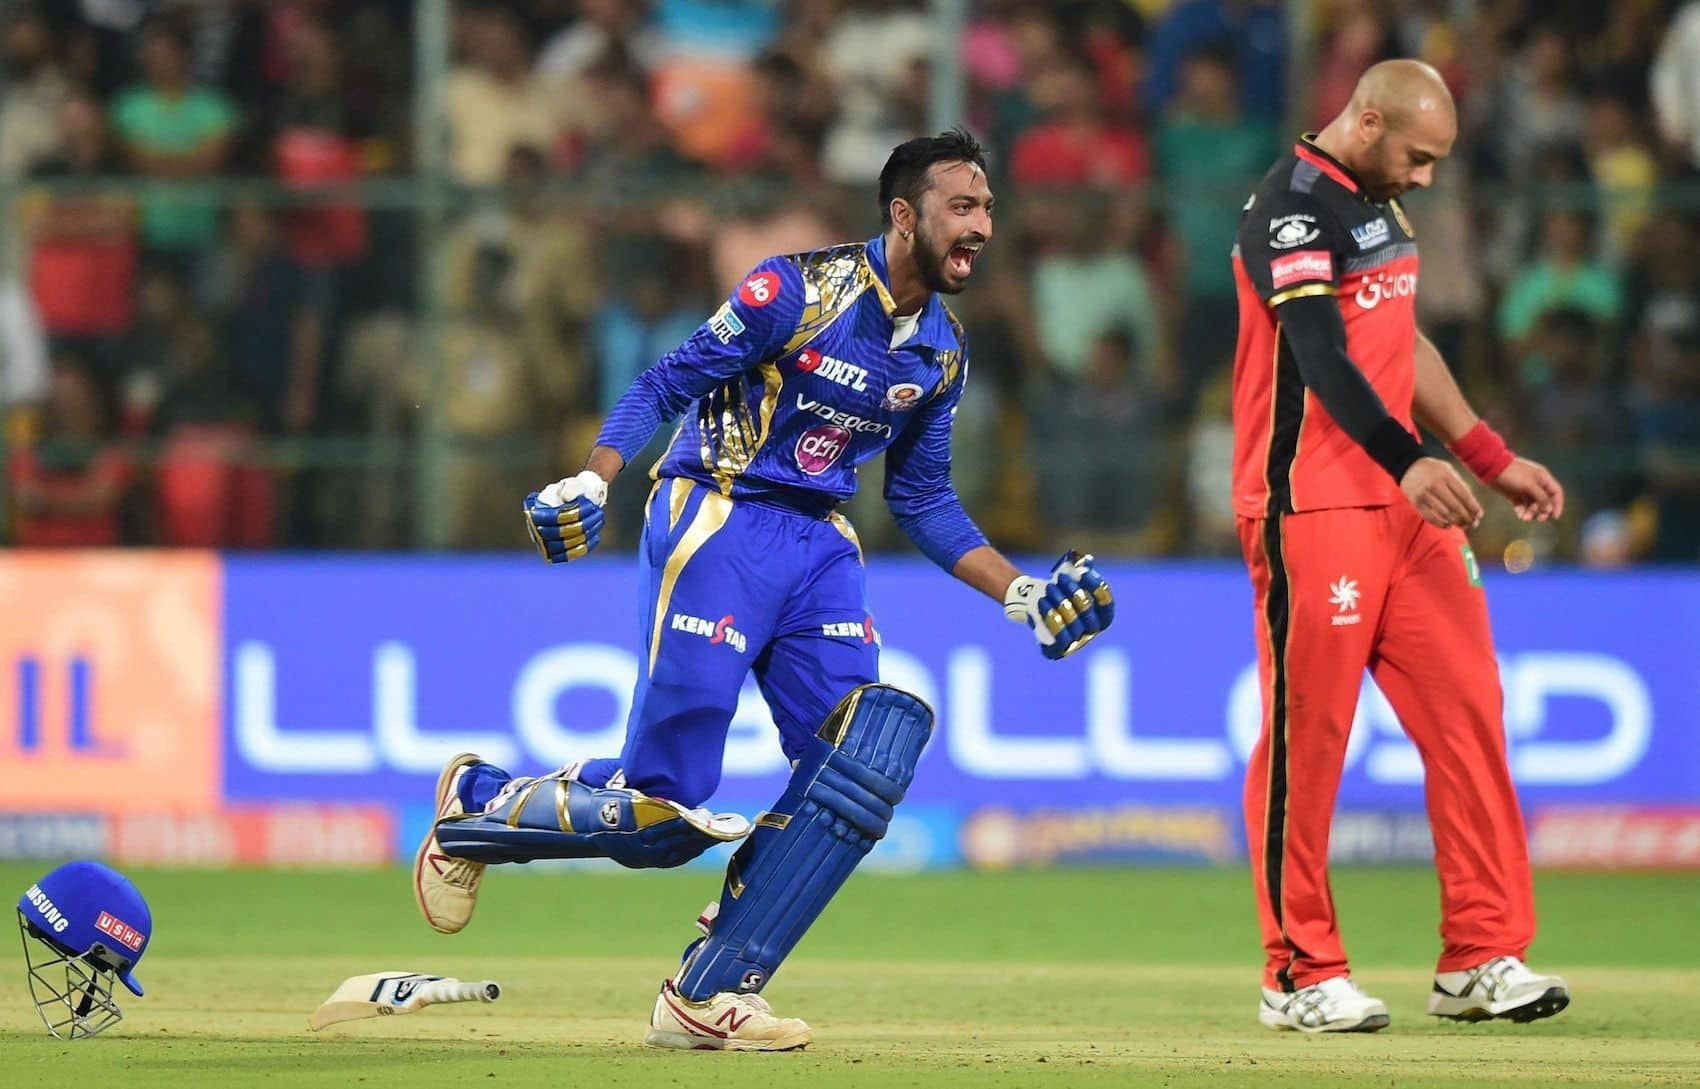 Mumbai Indians bought Krunal Pandya back for Rs 8.8 crore after his heroics in 2017